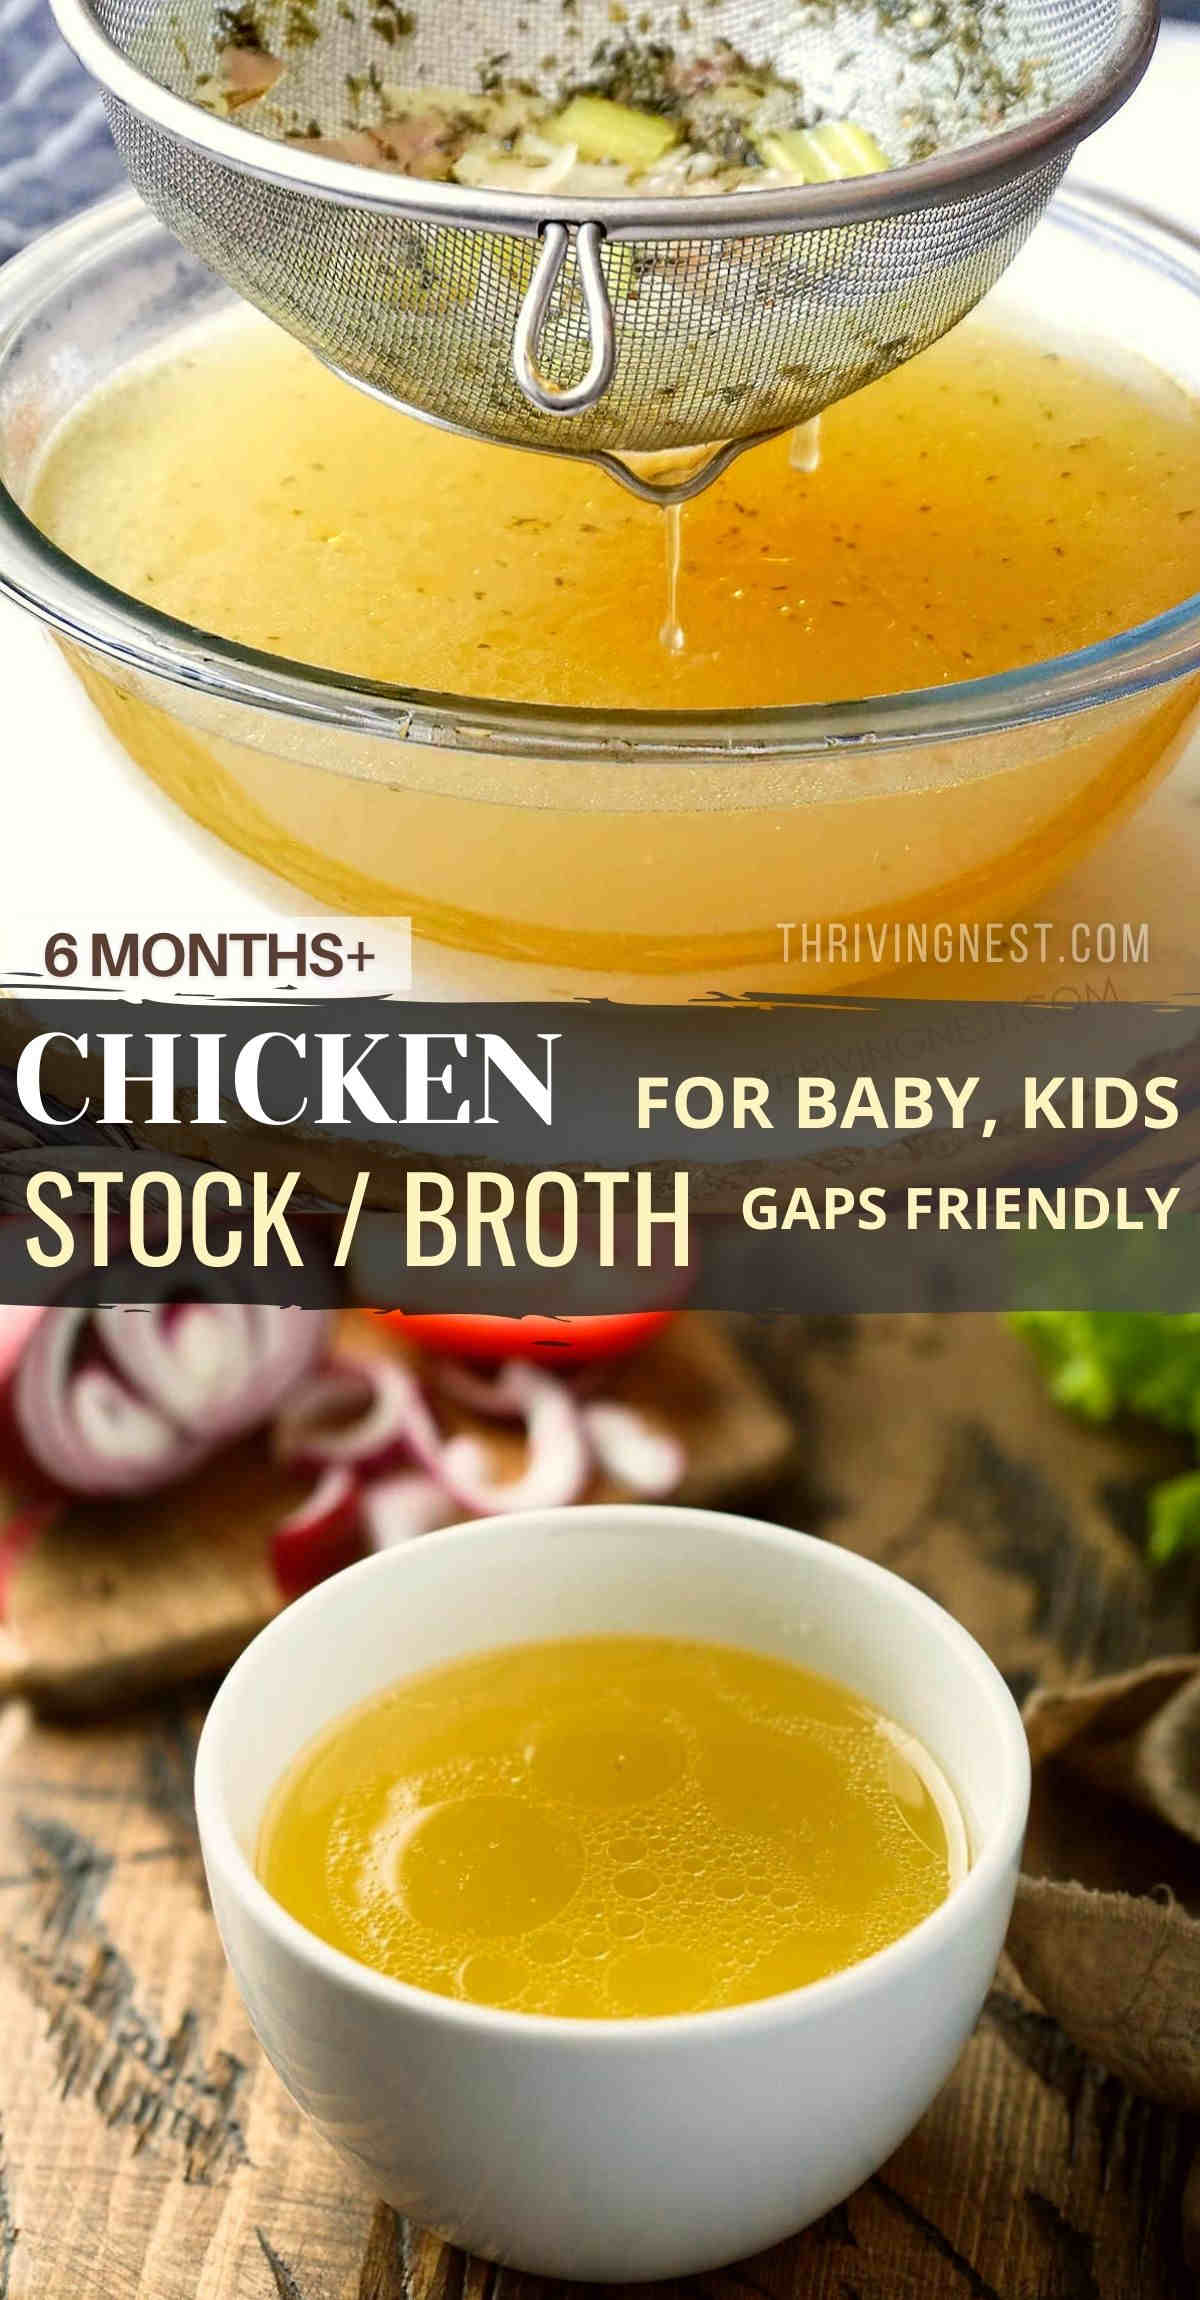 Make chicken stock / broth for baby with fresh wholesome ingredients. Use the chicken stock/broth for baby food starting from 6 months - as the starring ingredient in soups and meals (purees) that require liquid. This chicken stock/ broth it's great for bottle fed babies too. #babybroth #chickenbroth #babystock #babychickenstock #chickenbrothforbabies #brothforbaby #stockforbaby